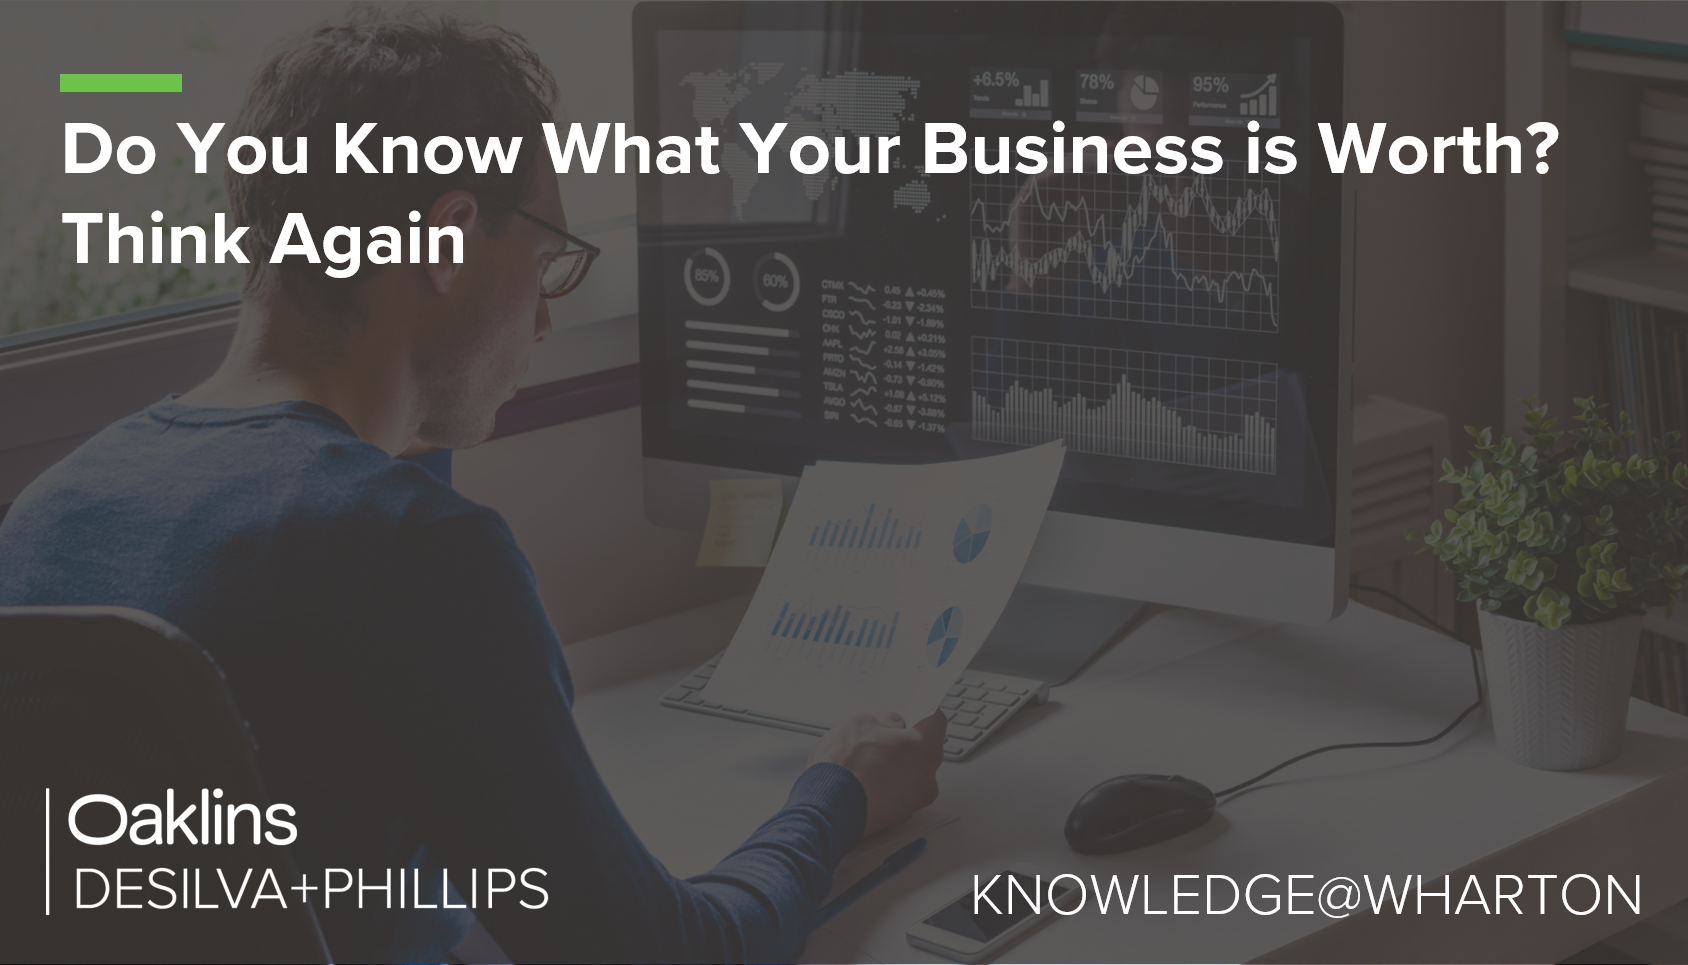 Do You Know What Your Business is Worth? Think Again